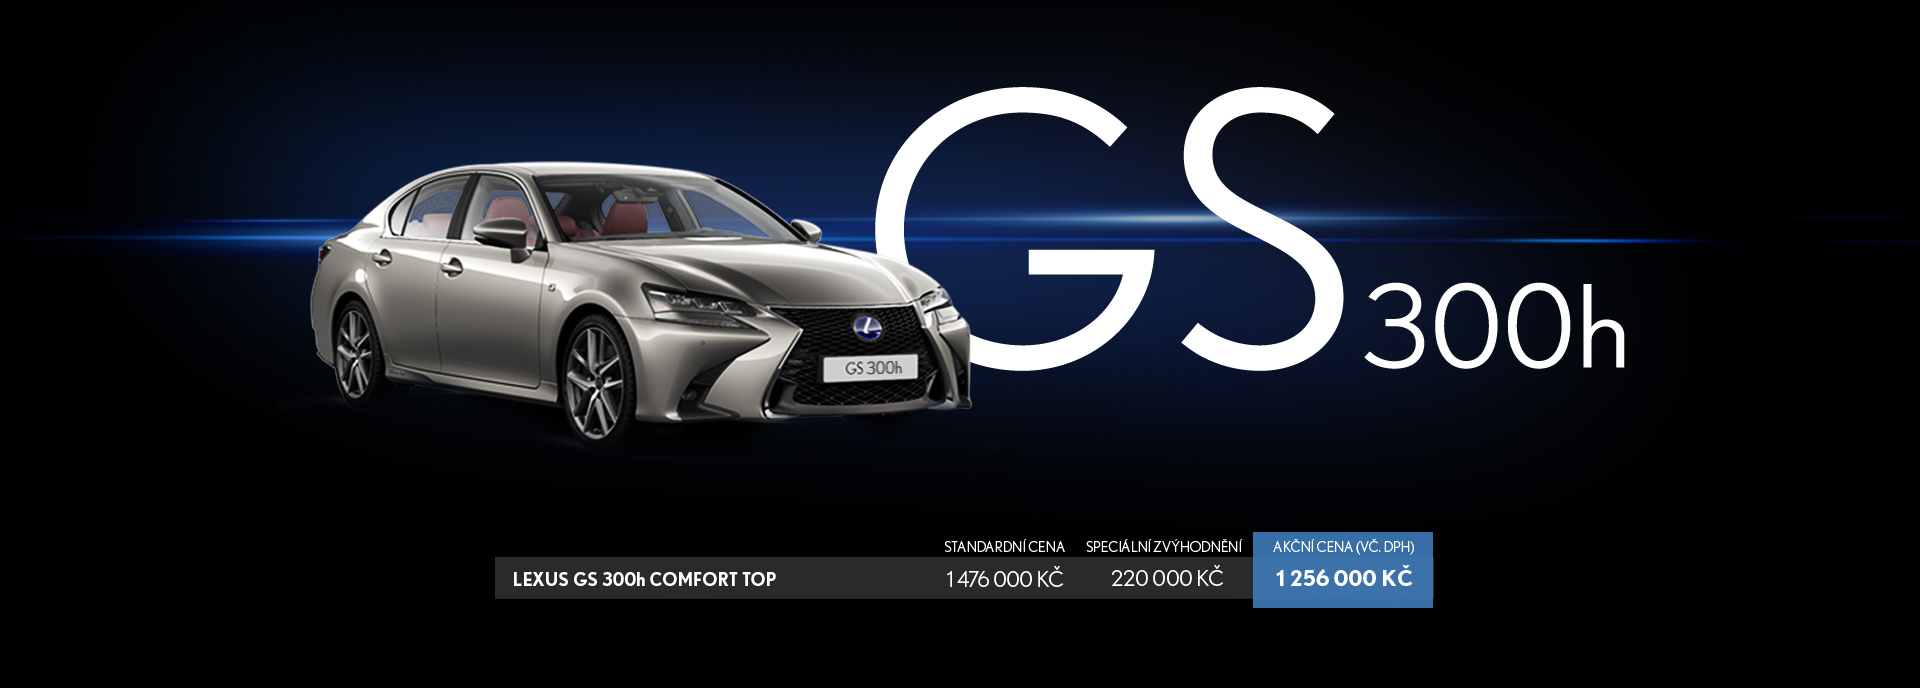 GS 300h Banner Image